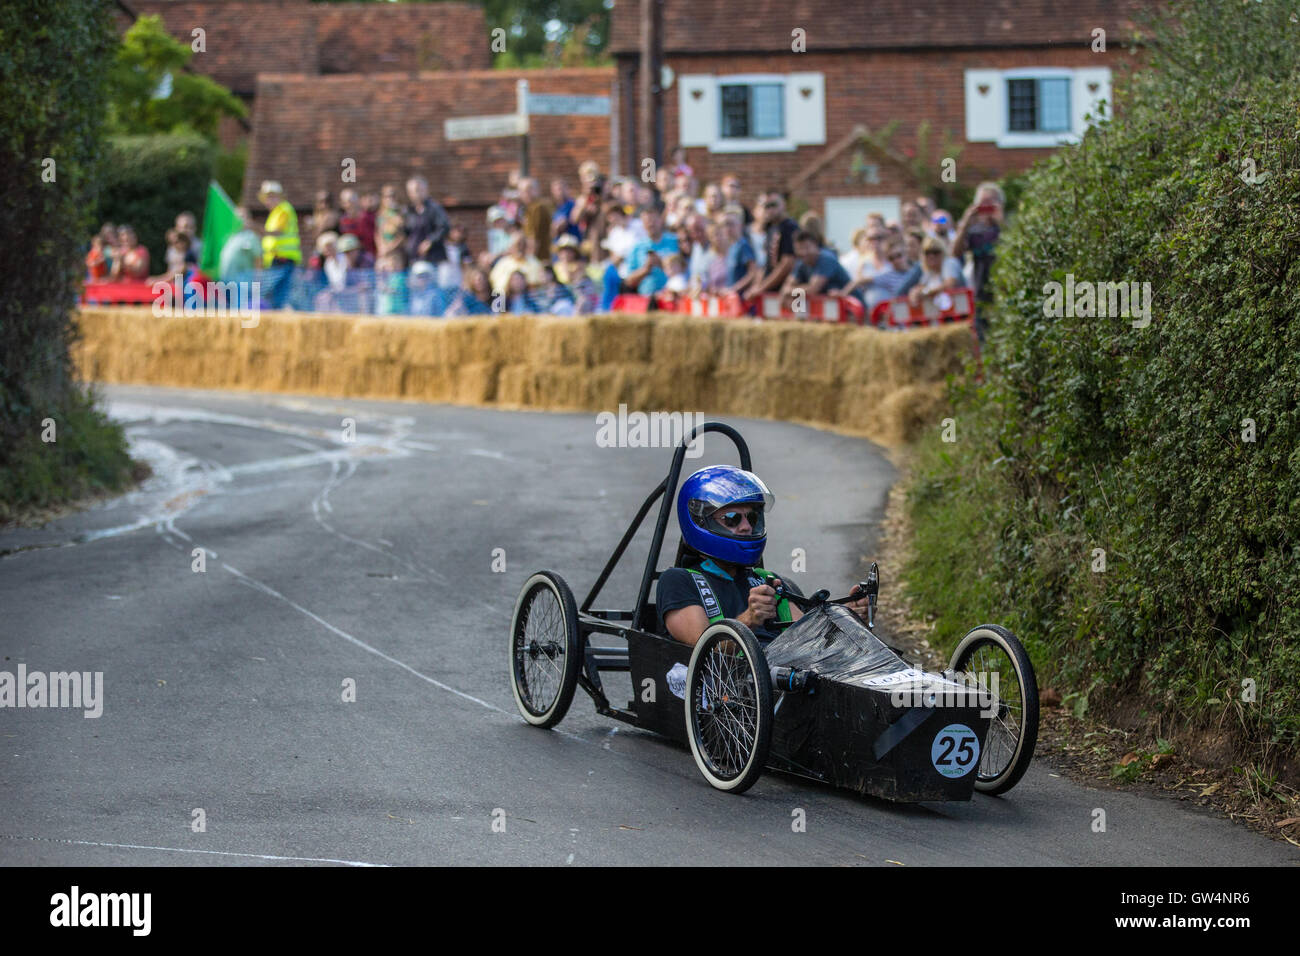 Cookham Dean, UK. 11th Sep, 2016. A custom-built go-kart competes in the Cookham Dean Gravity Grand Prix in aid - Stock Image